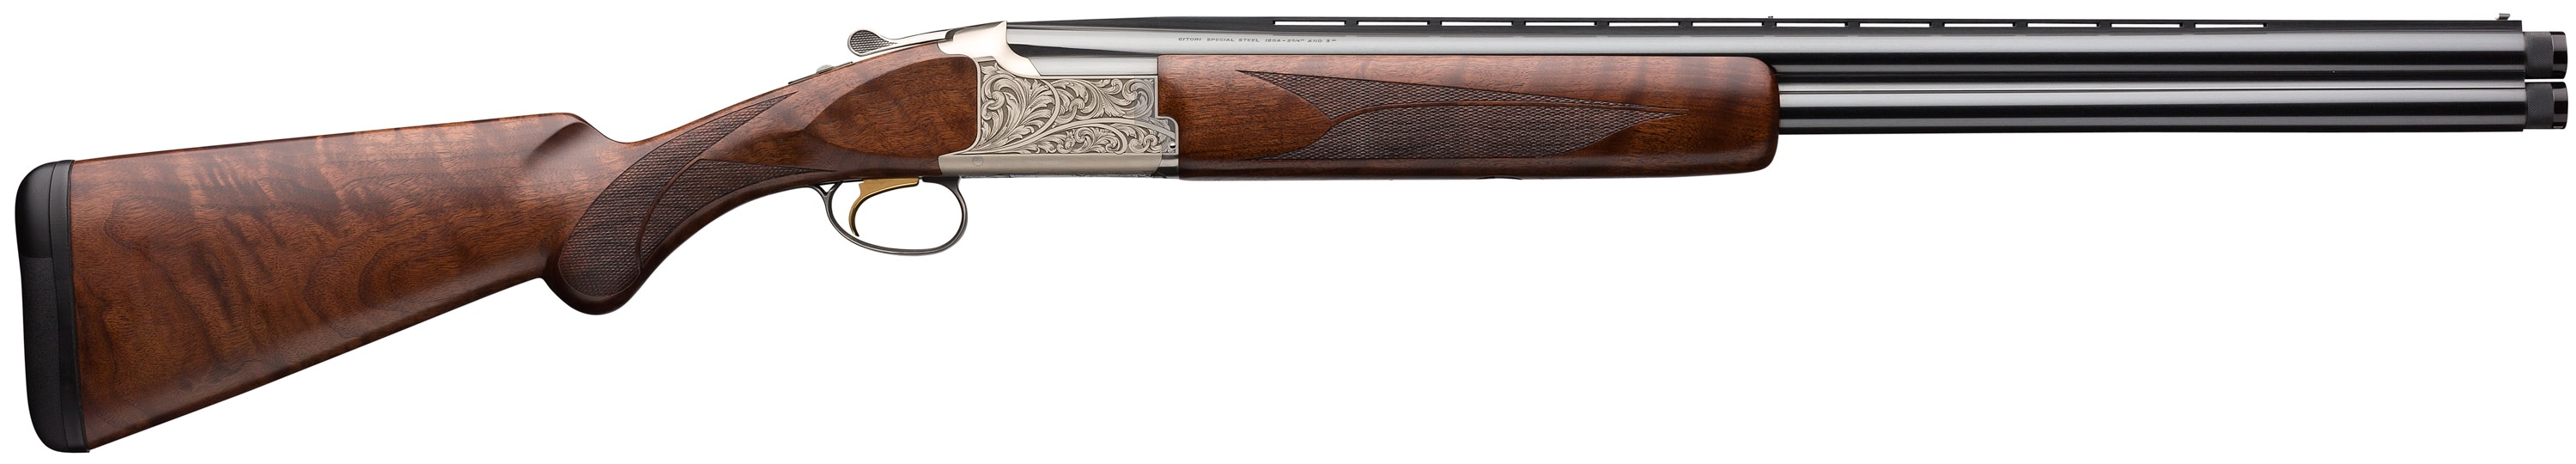 Browning Citori Feather Lightning Over/Under 3'' 12 Gauge 28'' Silver Nitride Steel/Black Barrel - Black Walnut